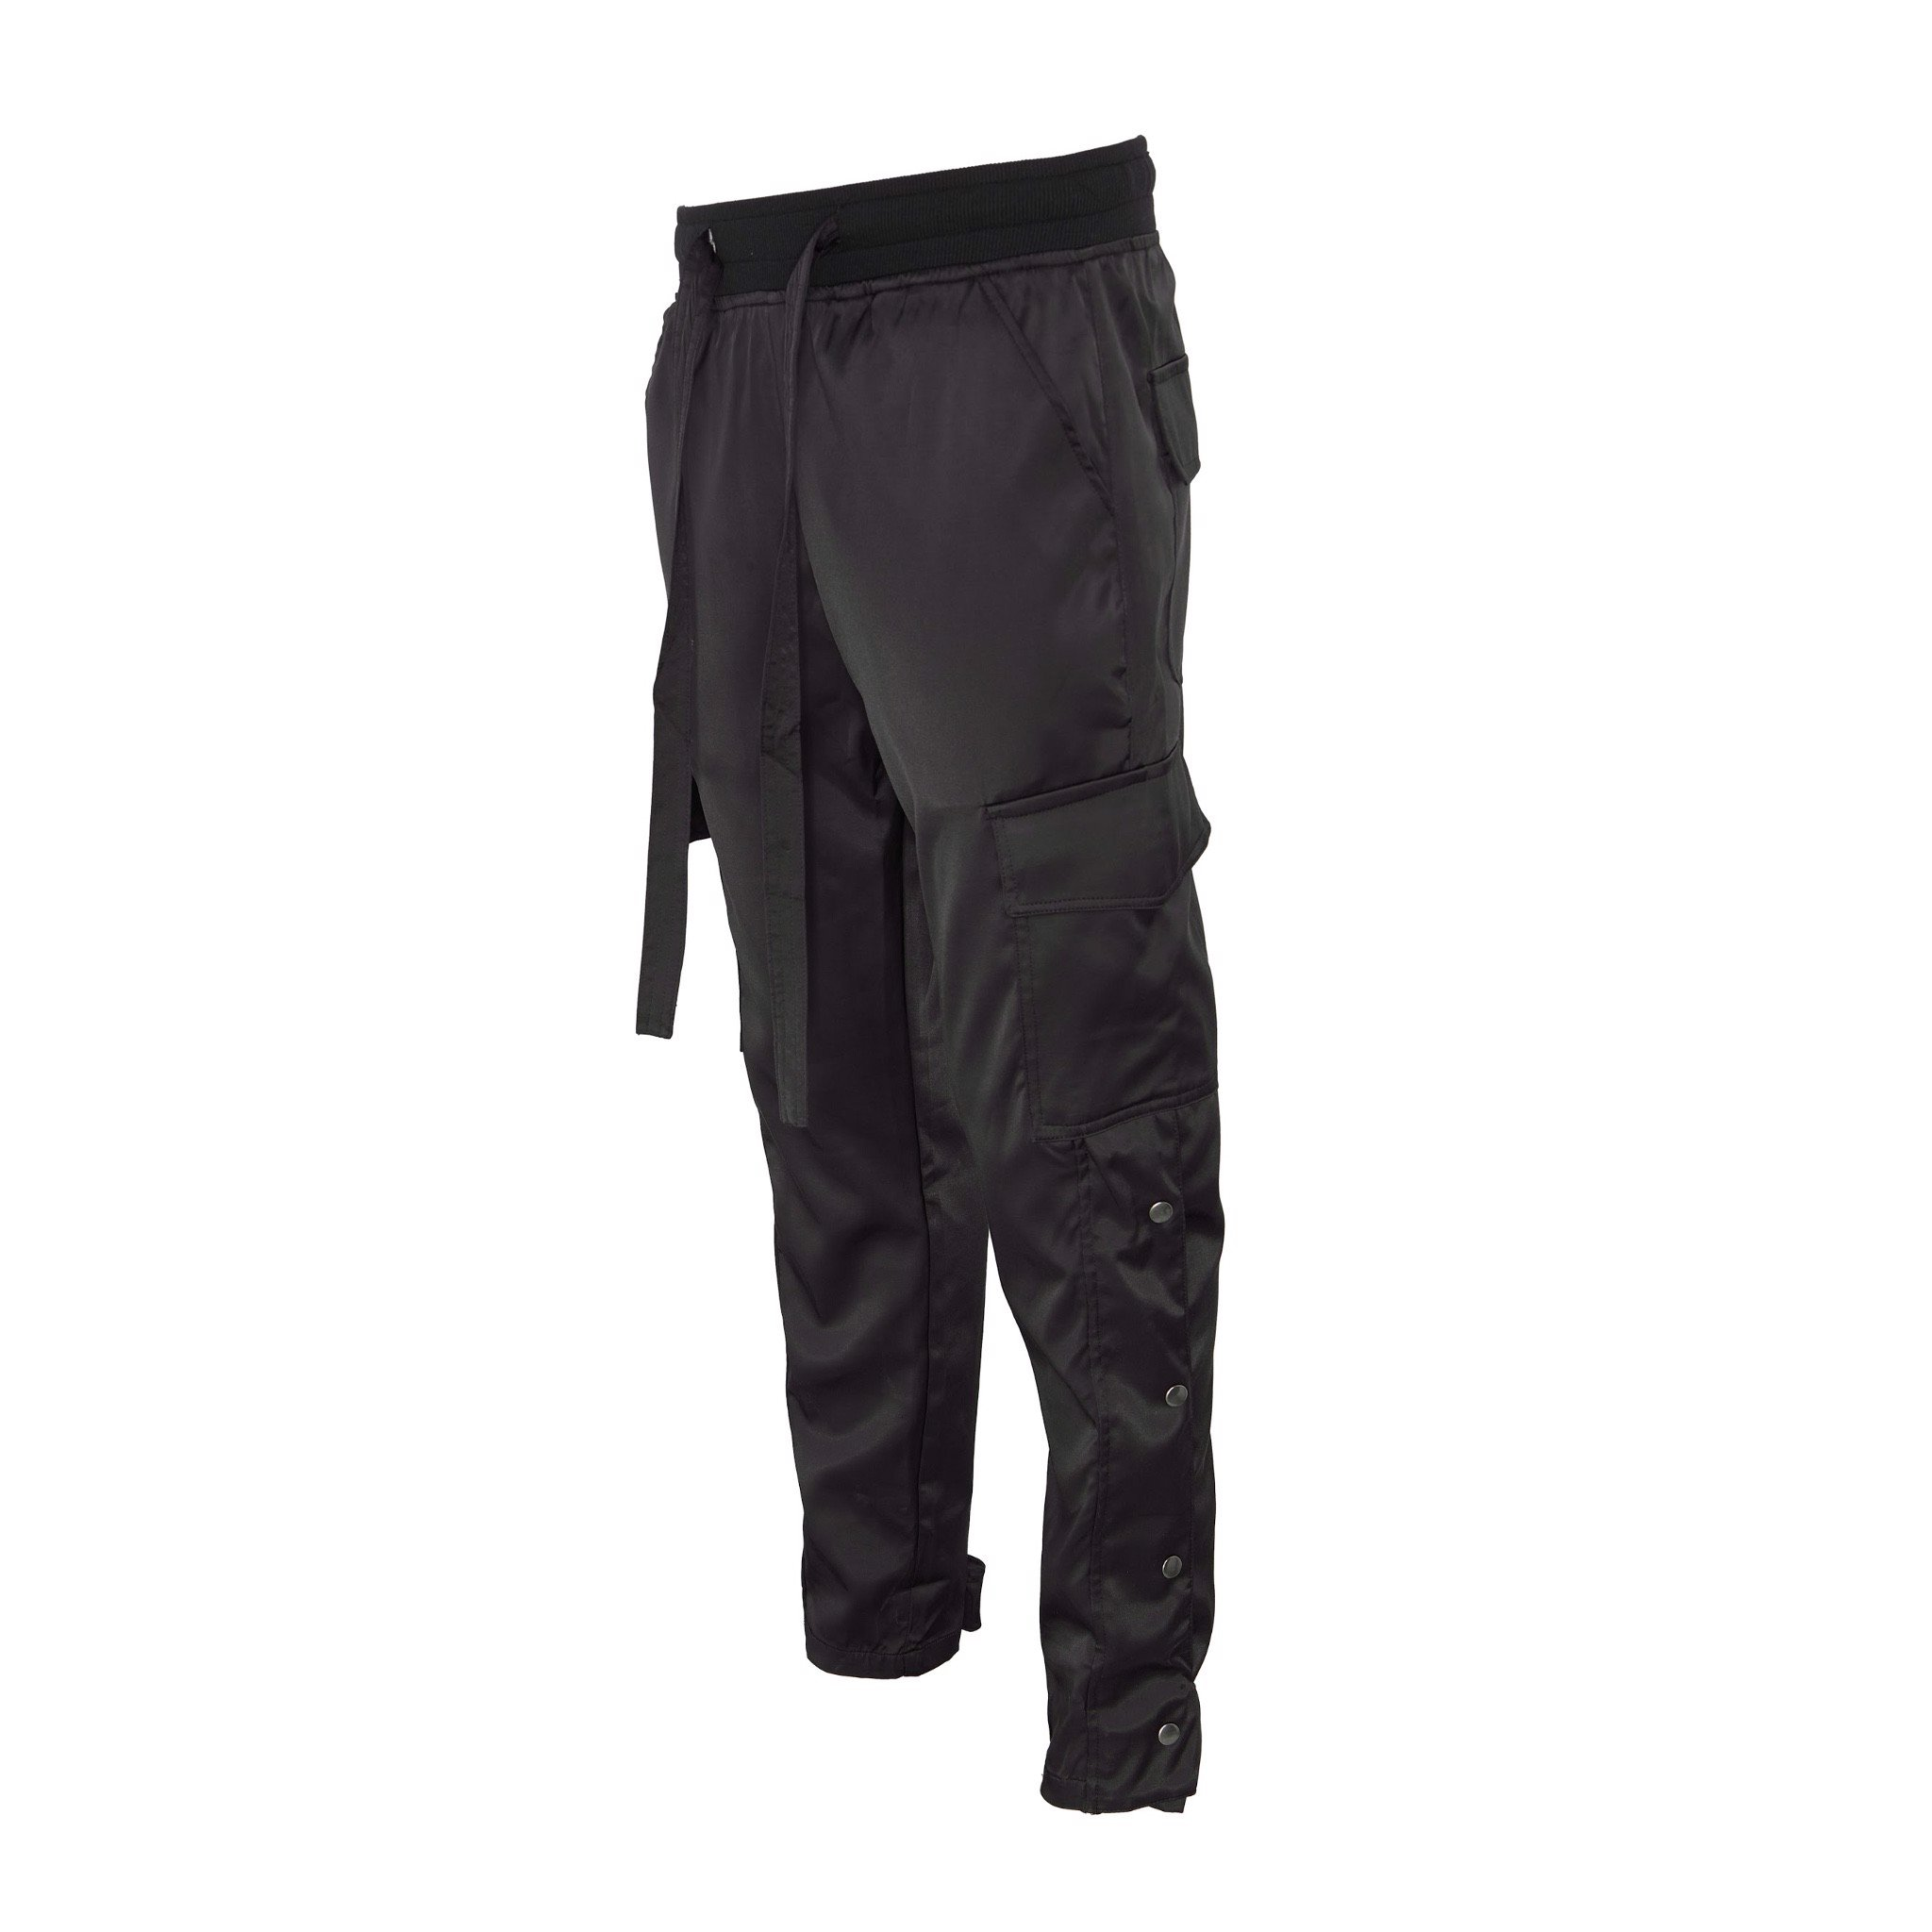 BLACK/SNAP ZIPPER CARGO PANT